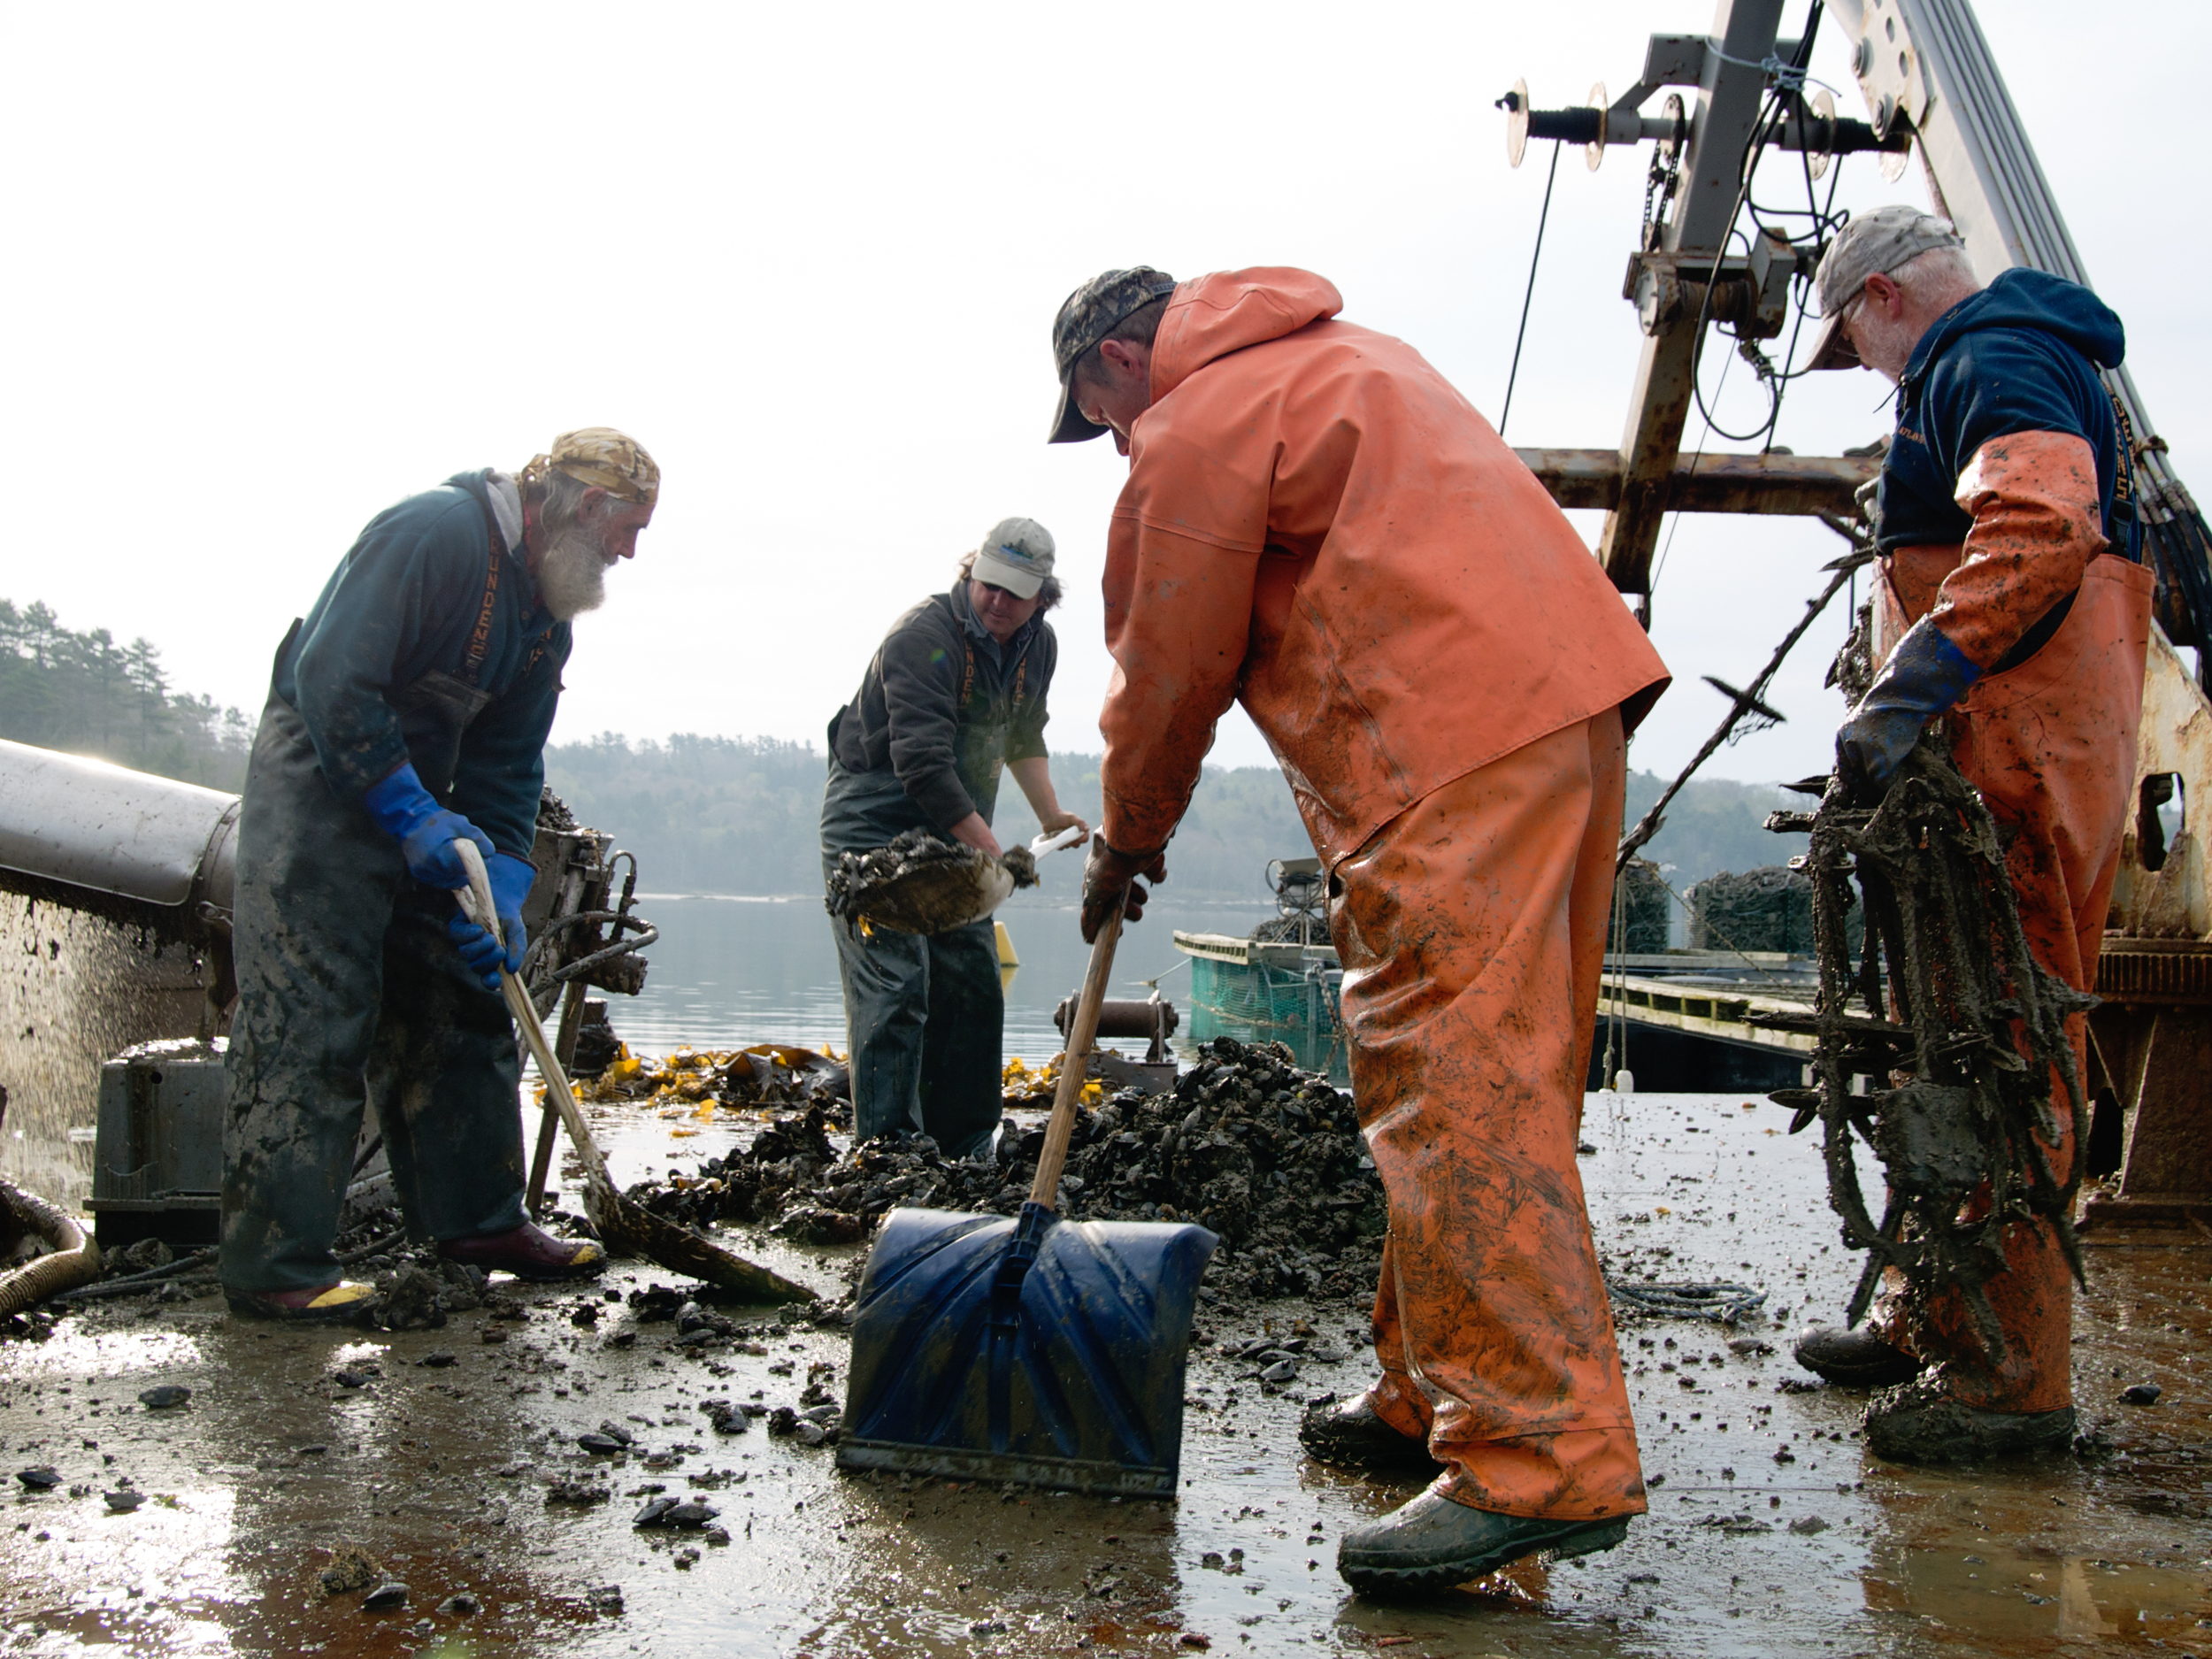 (05/09/09) Once the mussels are deposited onto the deck of the barge they have to be shaken off the ropes by hand. Mud flies in the air and Peter Fischer (left) and Greg Thompson (right) end up covered from head to toe by the end of it.